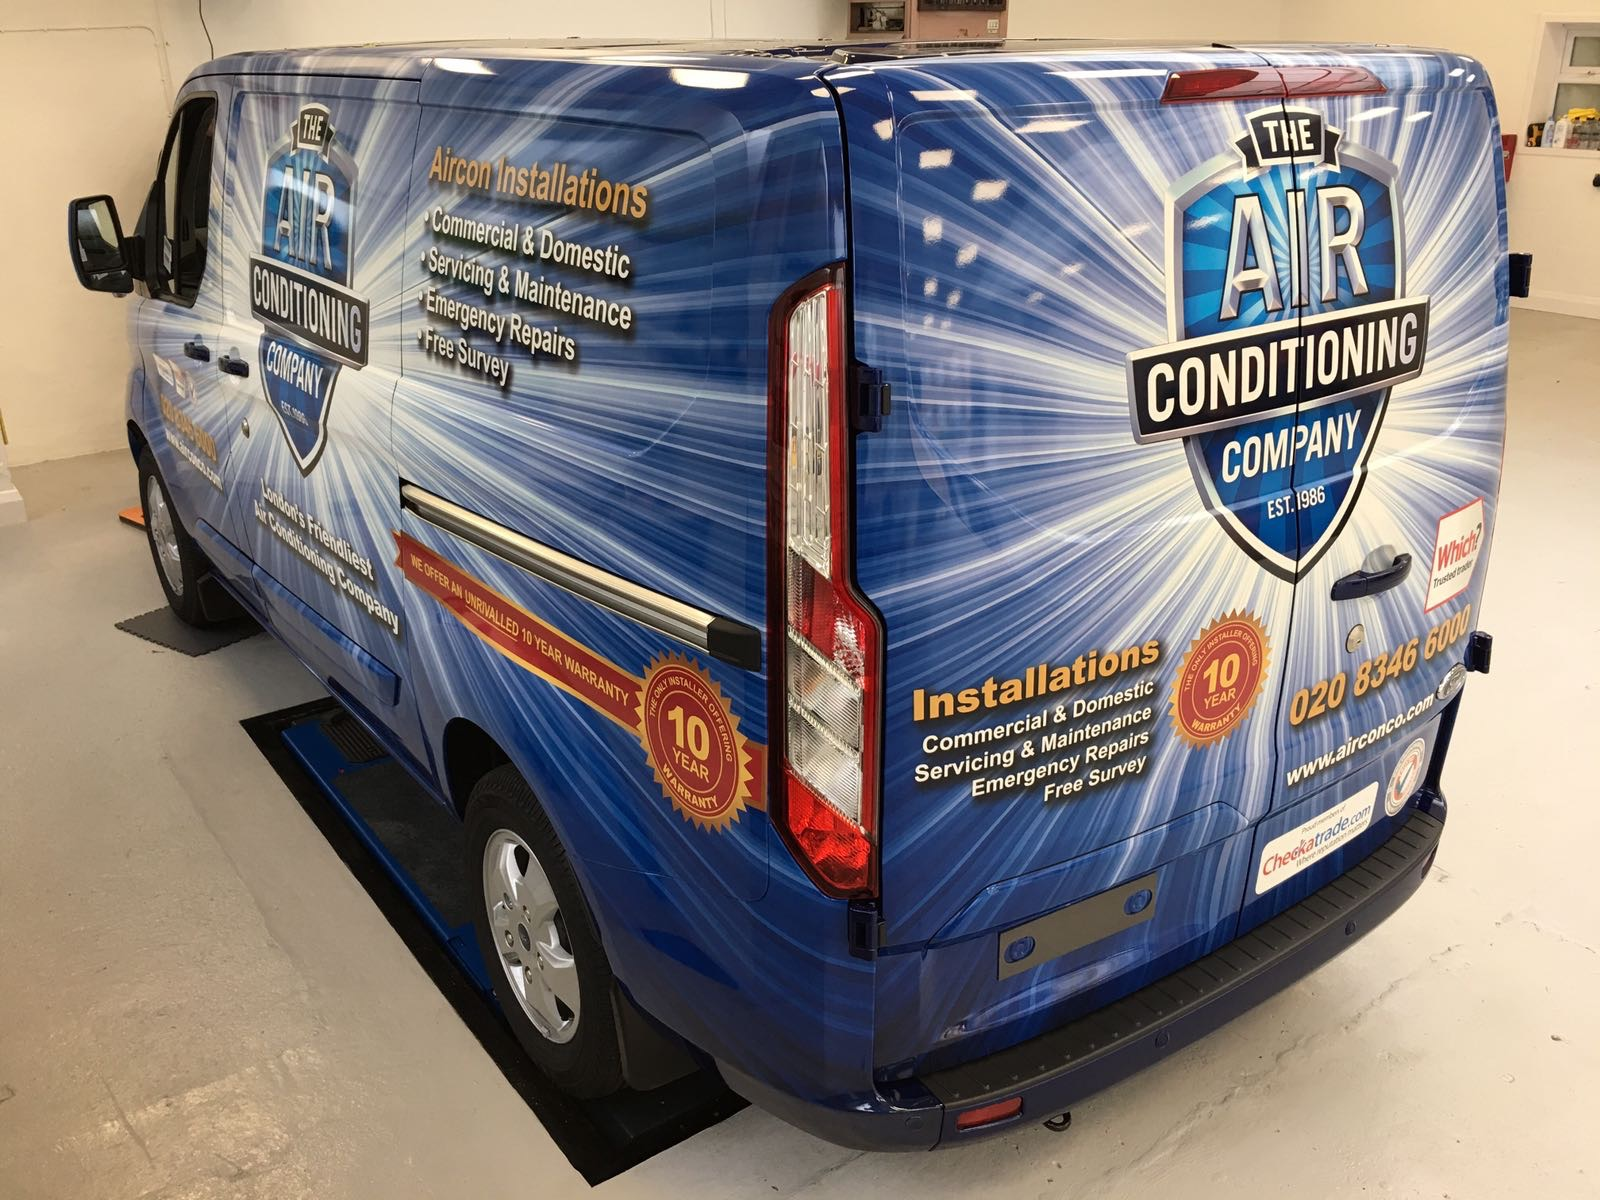 The Air Conditioning Company Creative Fx